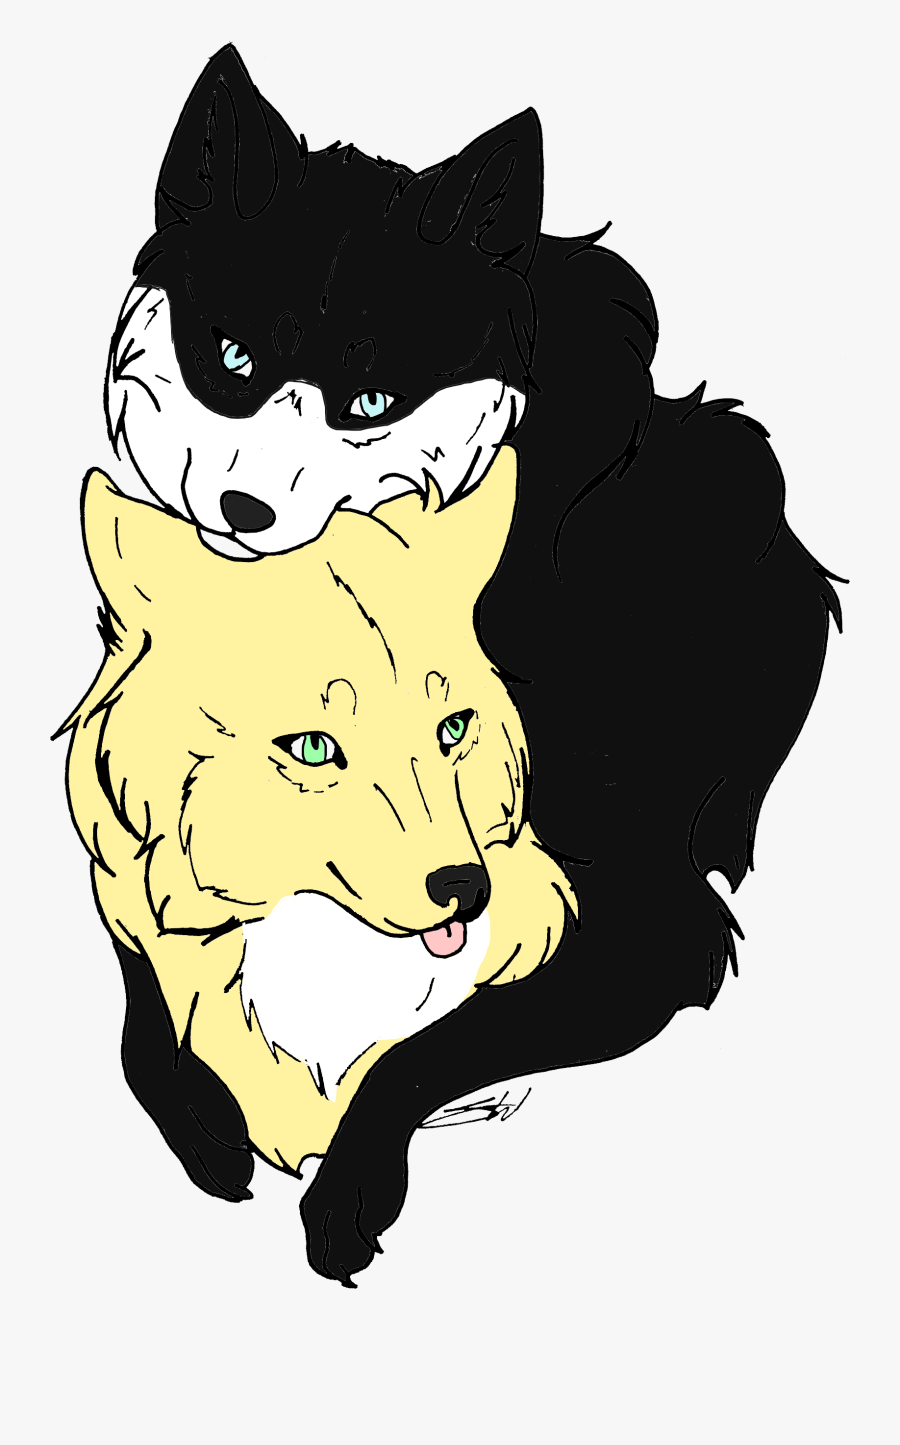 Sibling Wolf Lineart By Xx Auburn Wolf Xx-d567rqi - Wolf Wolf Lineart, Transparent Clipart